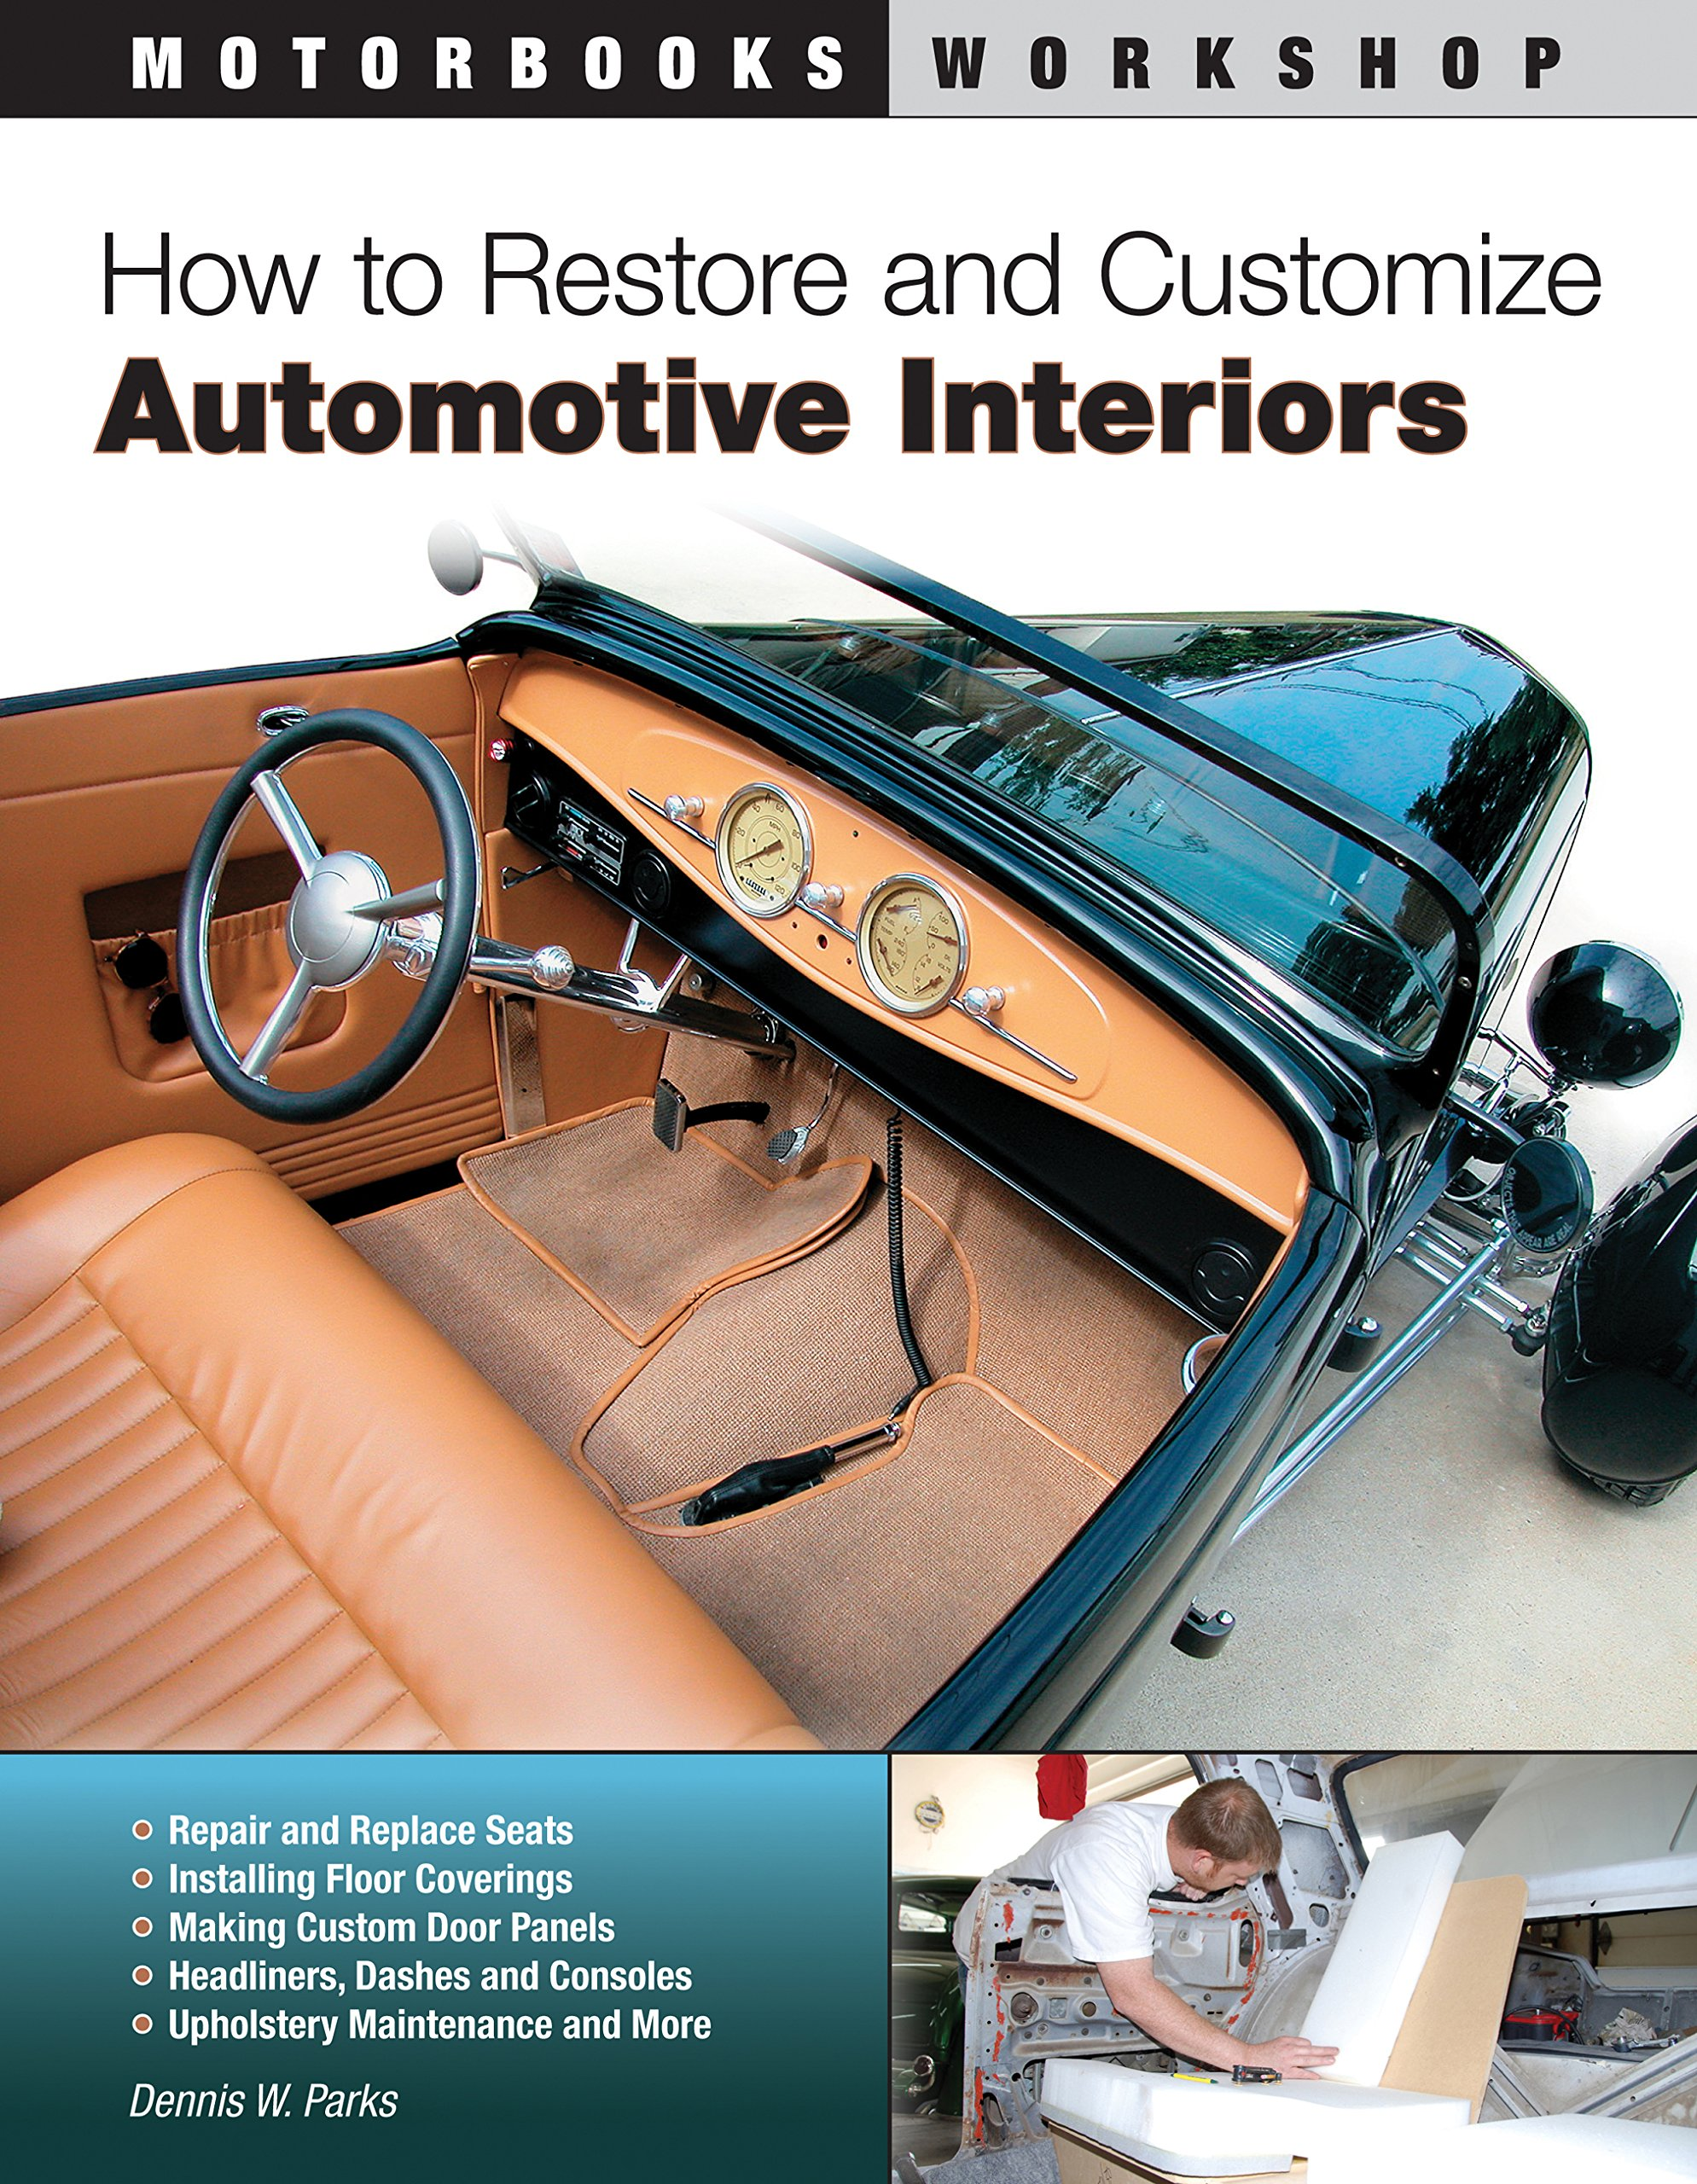 How To Restore And Customize Automotive Interiors Motorbooks